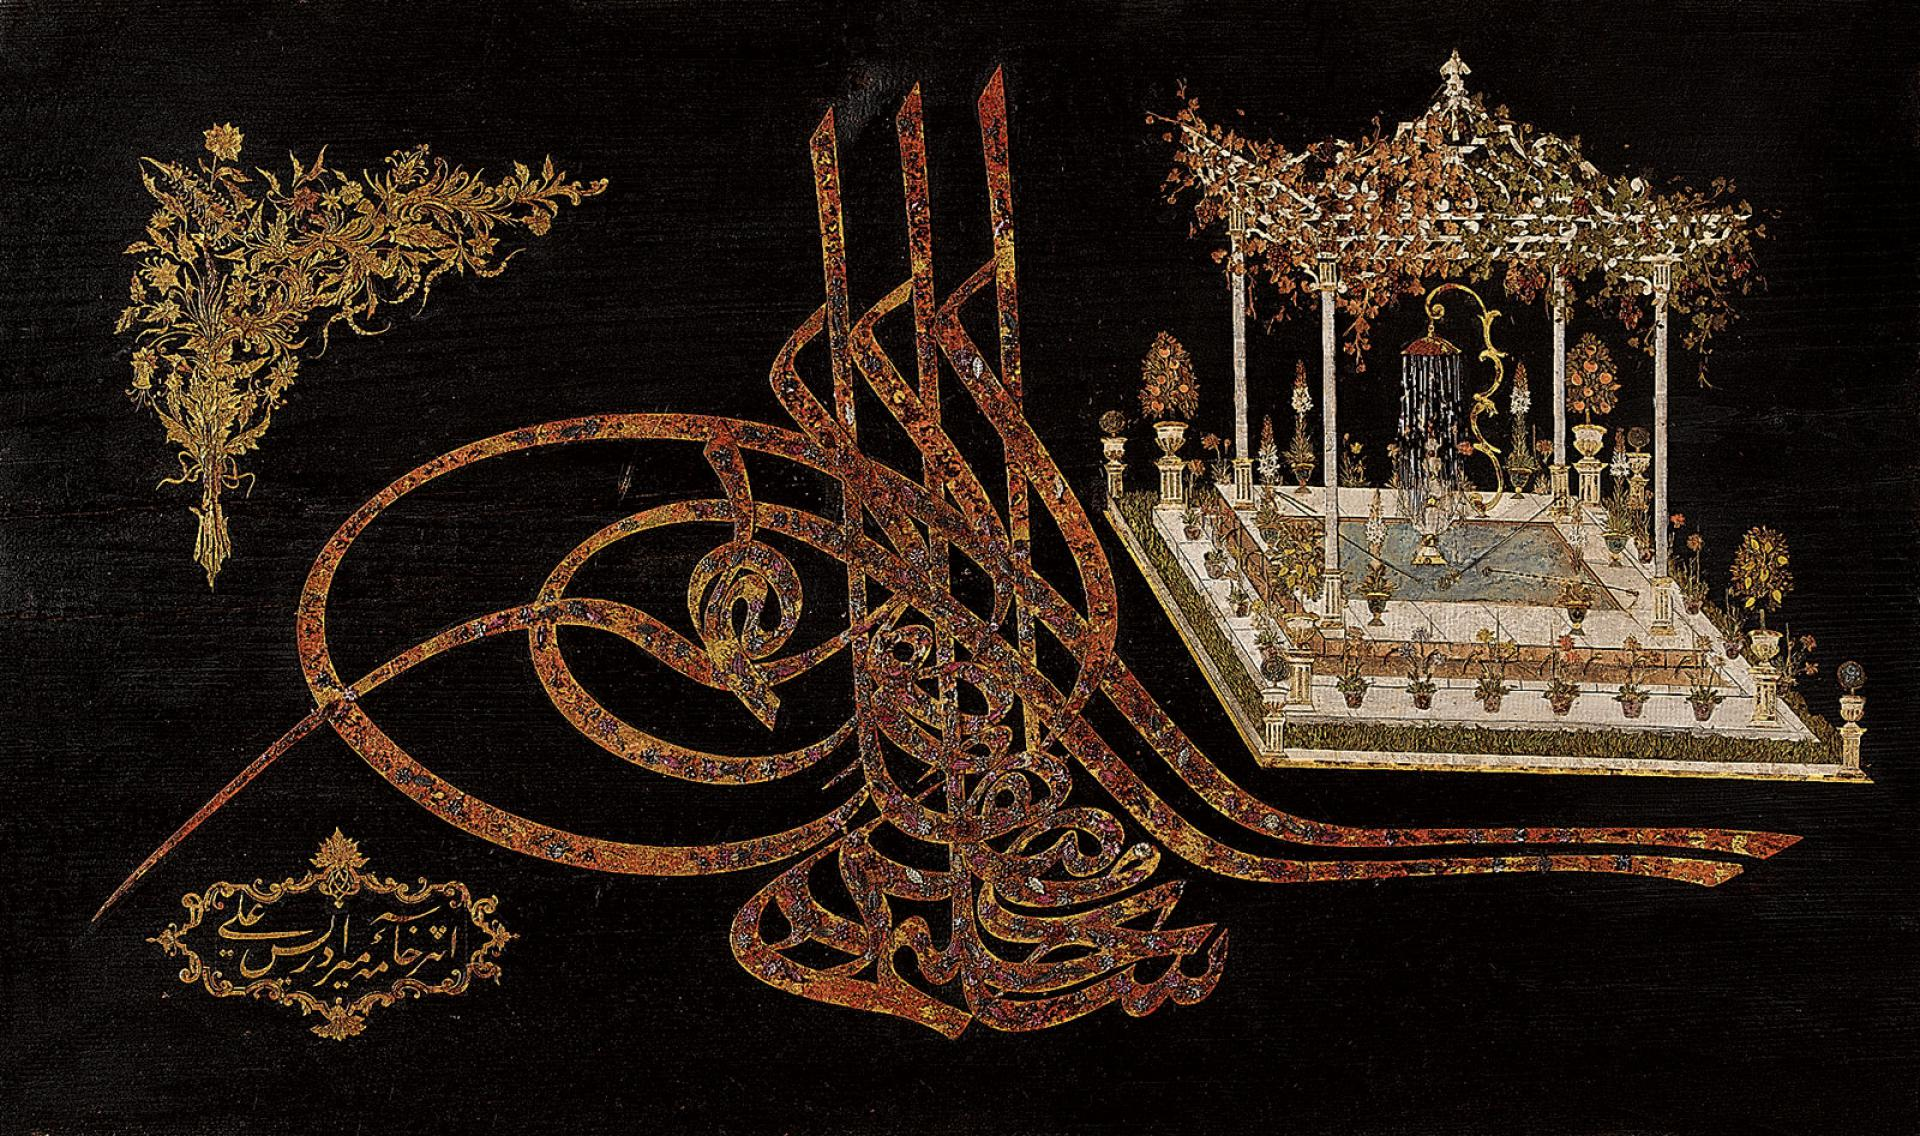 SHM15609 - Panel with the tugra of sultan Selim IIICalligrapher: Mîr İdris AliOttoman, 1789-1807Wood - papers - gold - beads